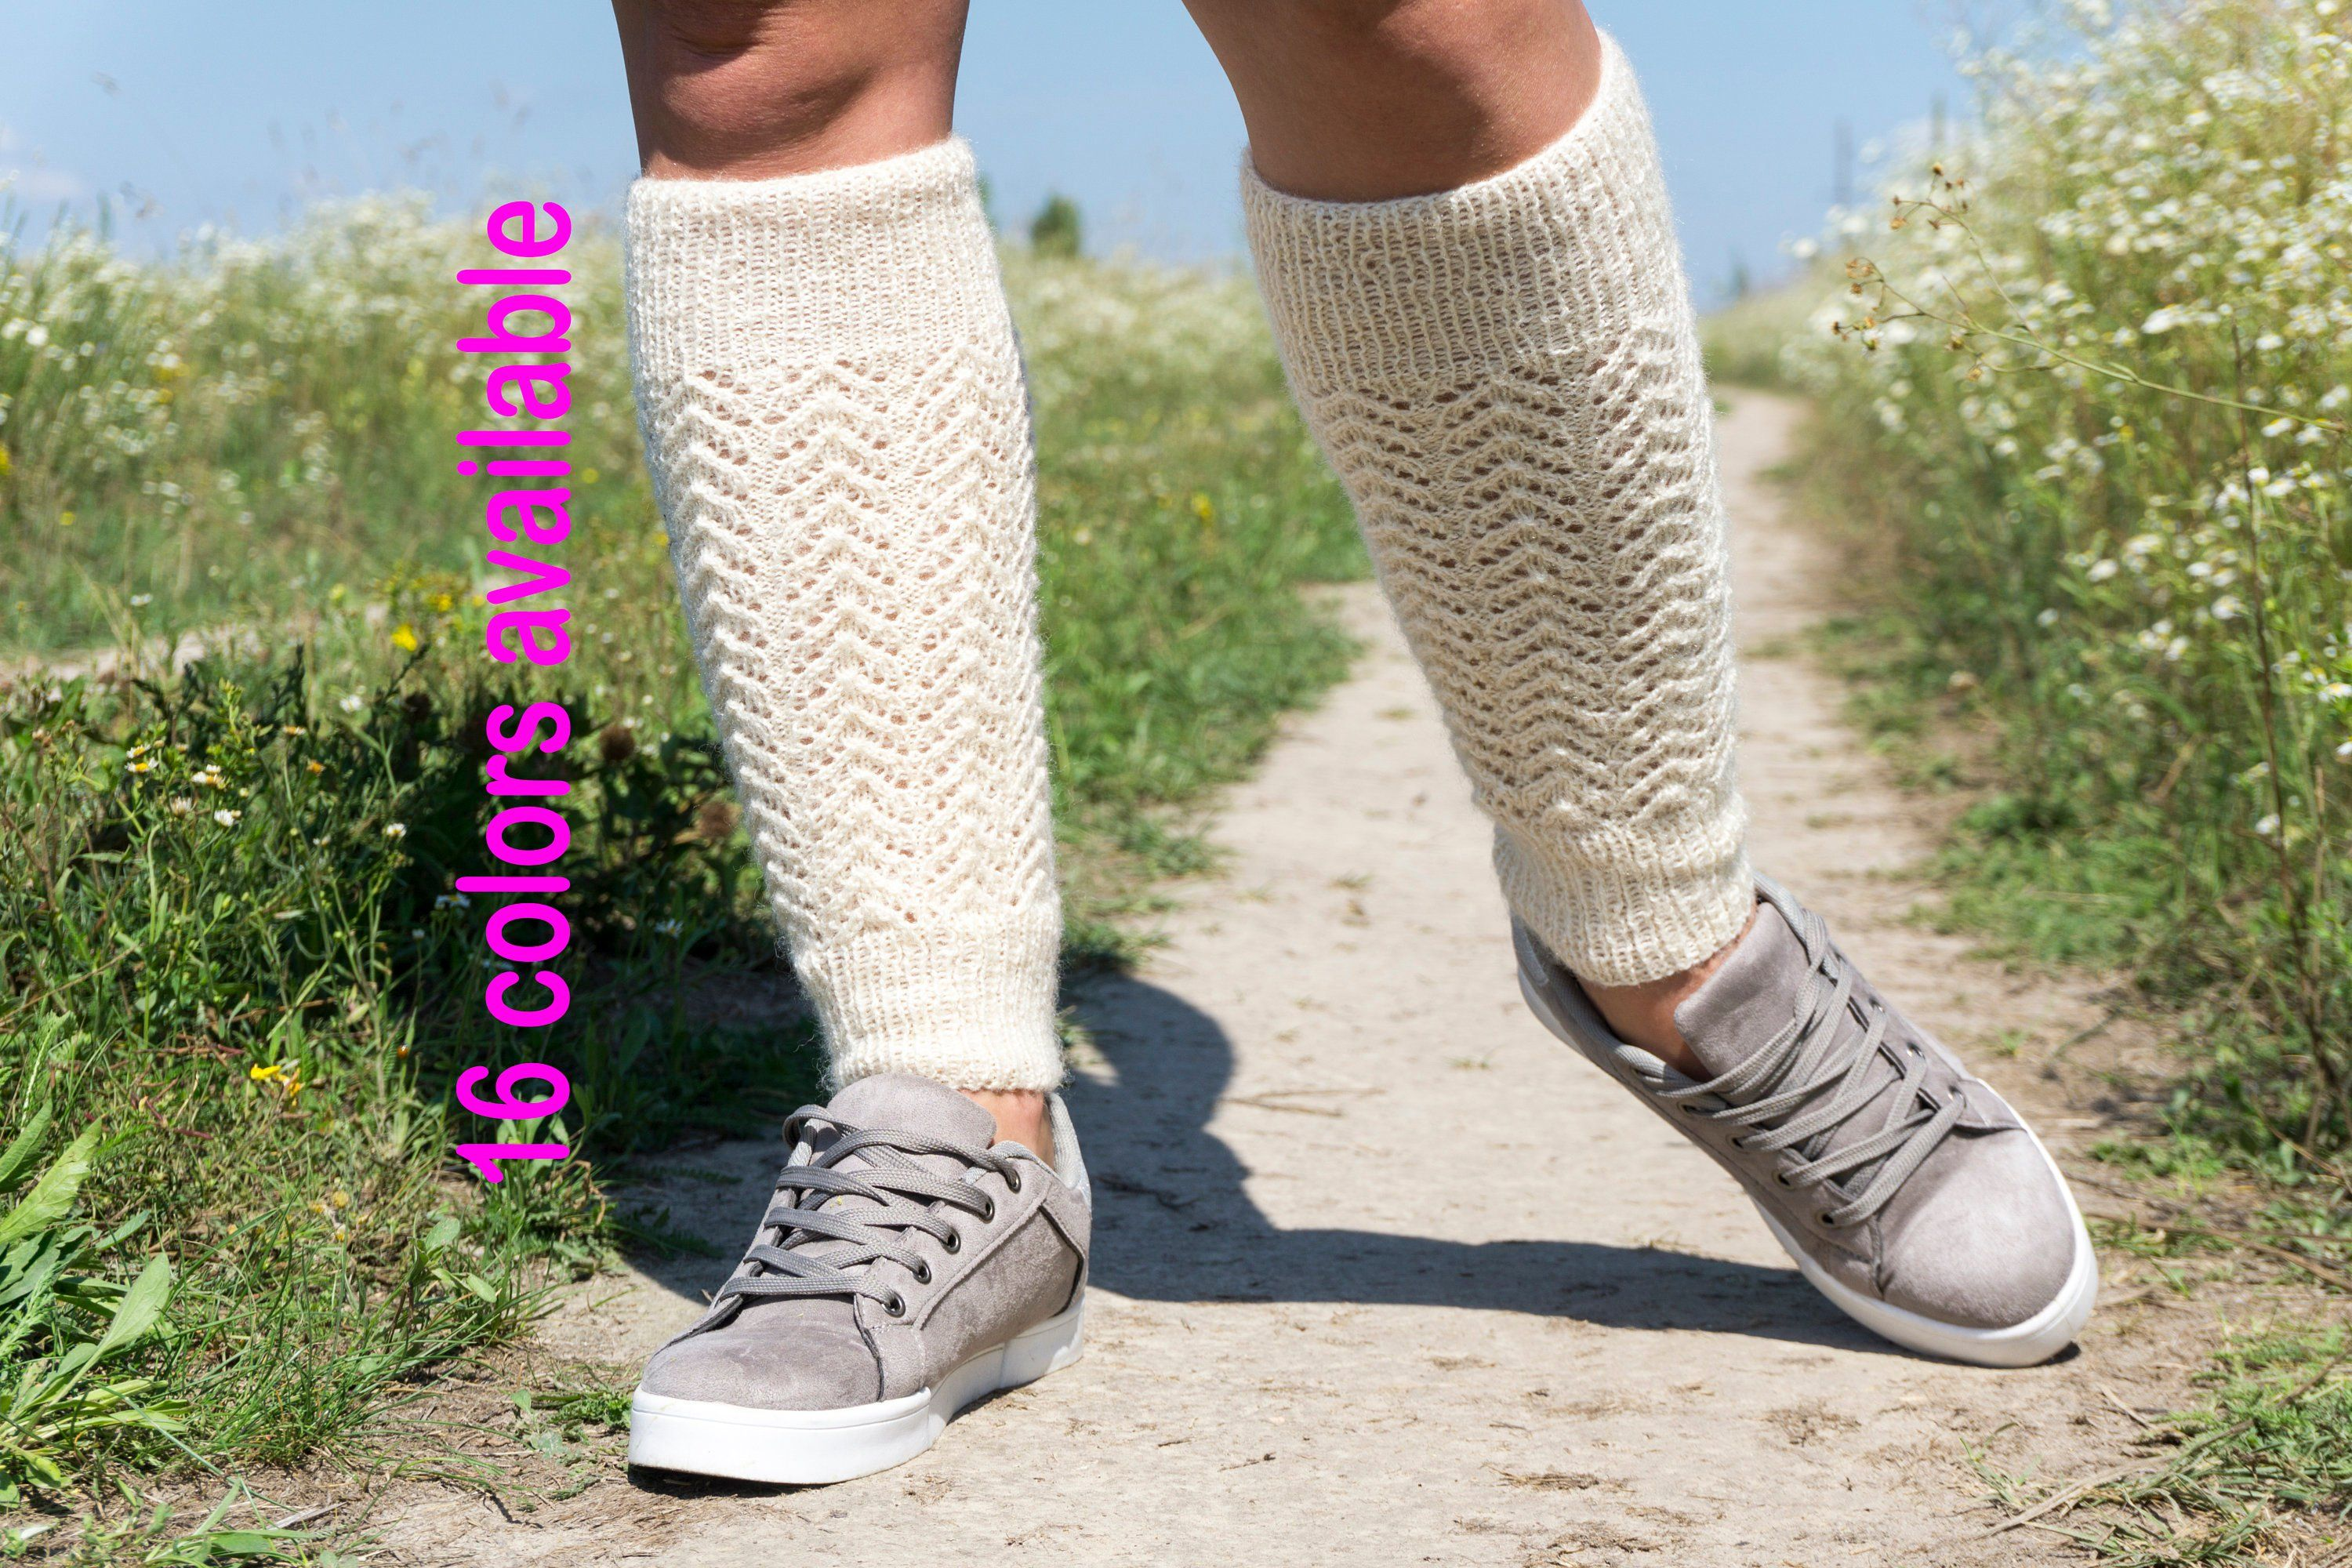 Hand knit wool leg warmers White leggings Dancing ballet fitness leg warmers Boot cuffs Ankle warmers Boot toppers Inspirational women gift #balletfitness